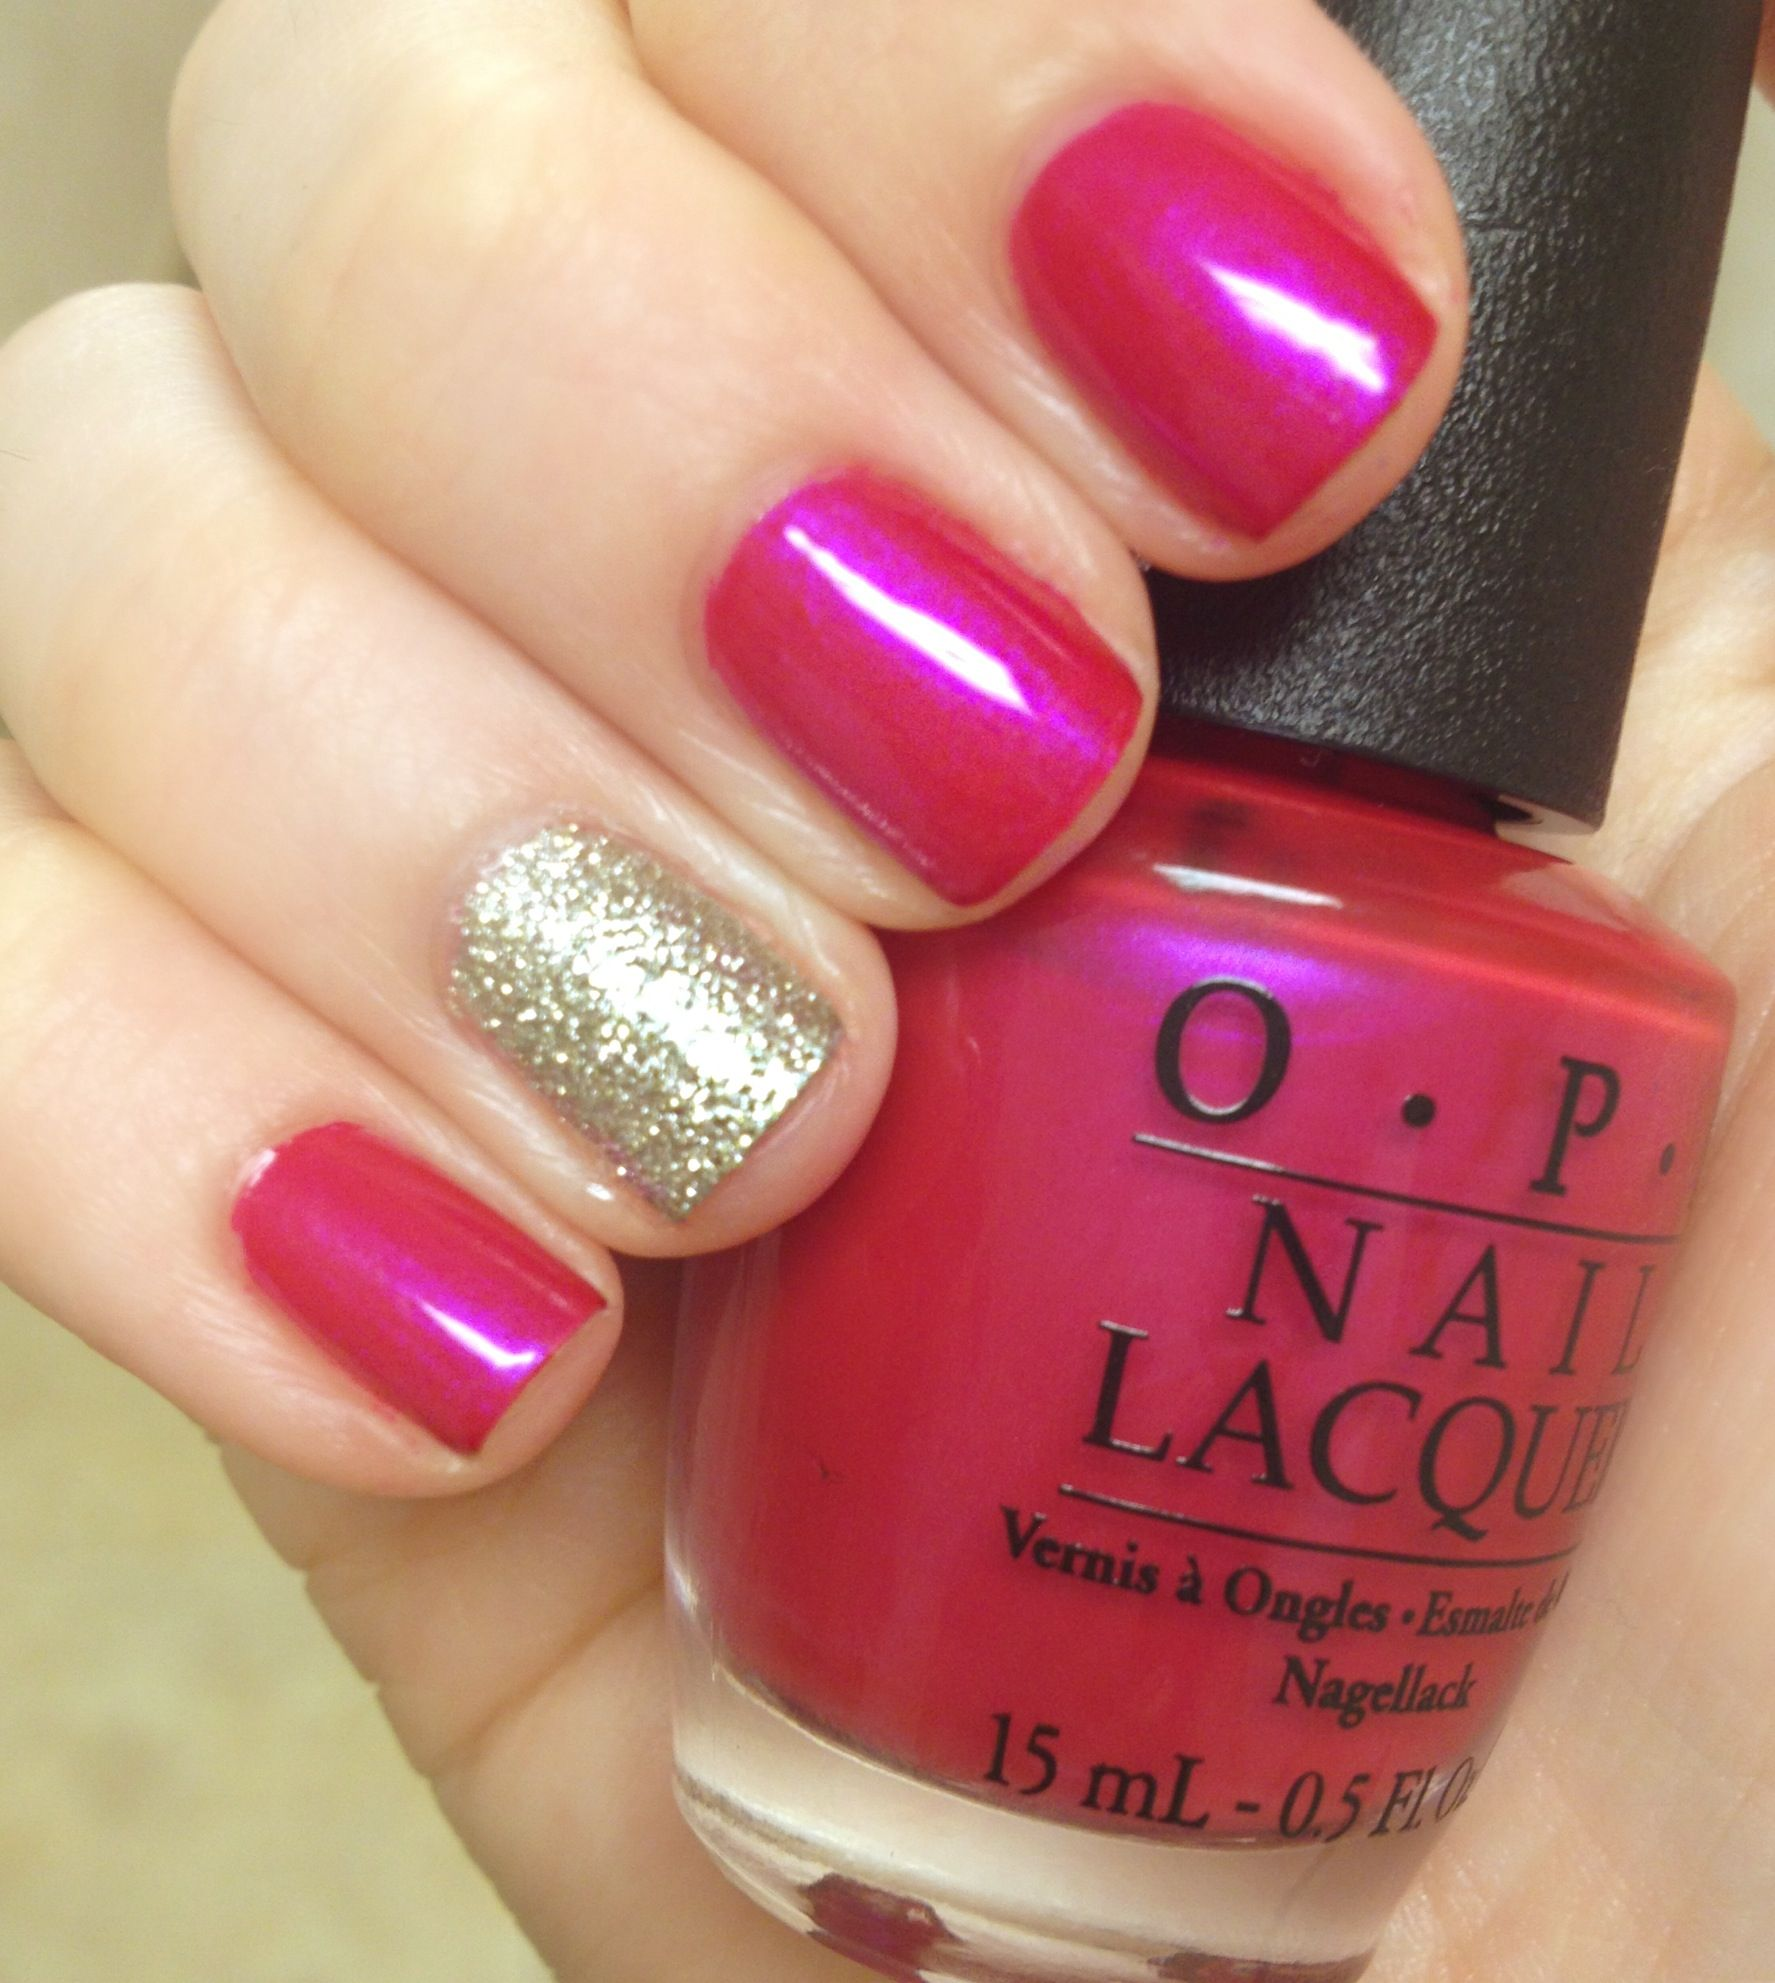 Opi Pompeii Purple Opi Gelcolor Pinterest Nail Trends Accent Nails And Pompeii